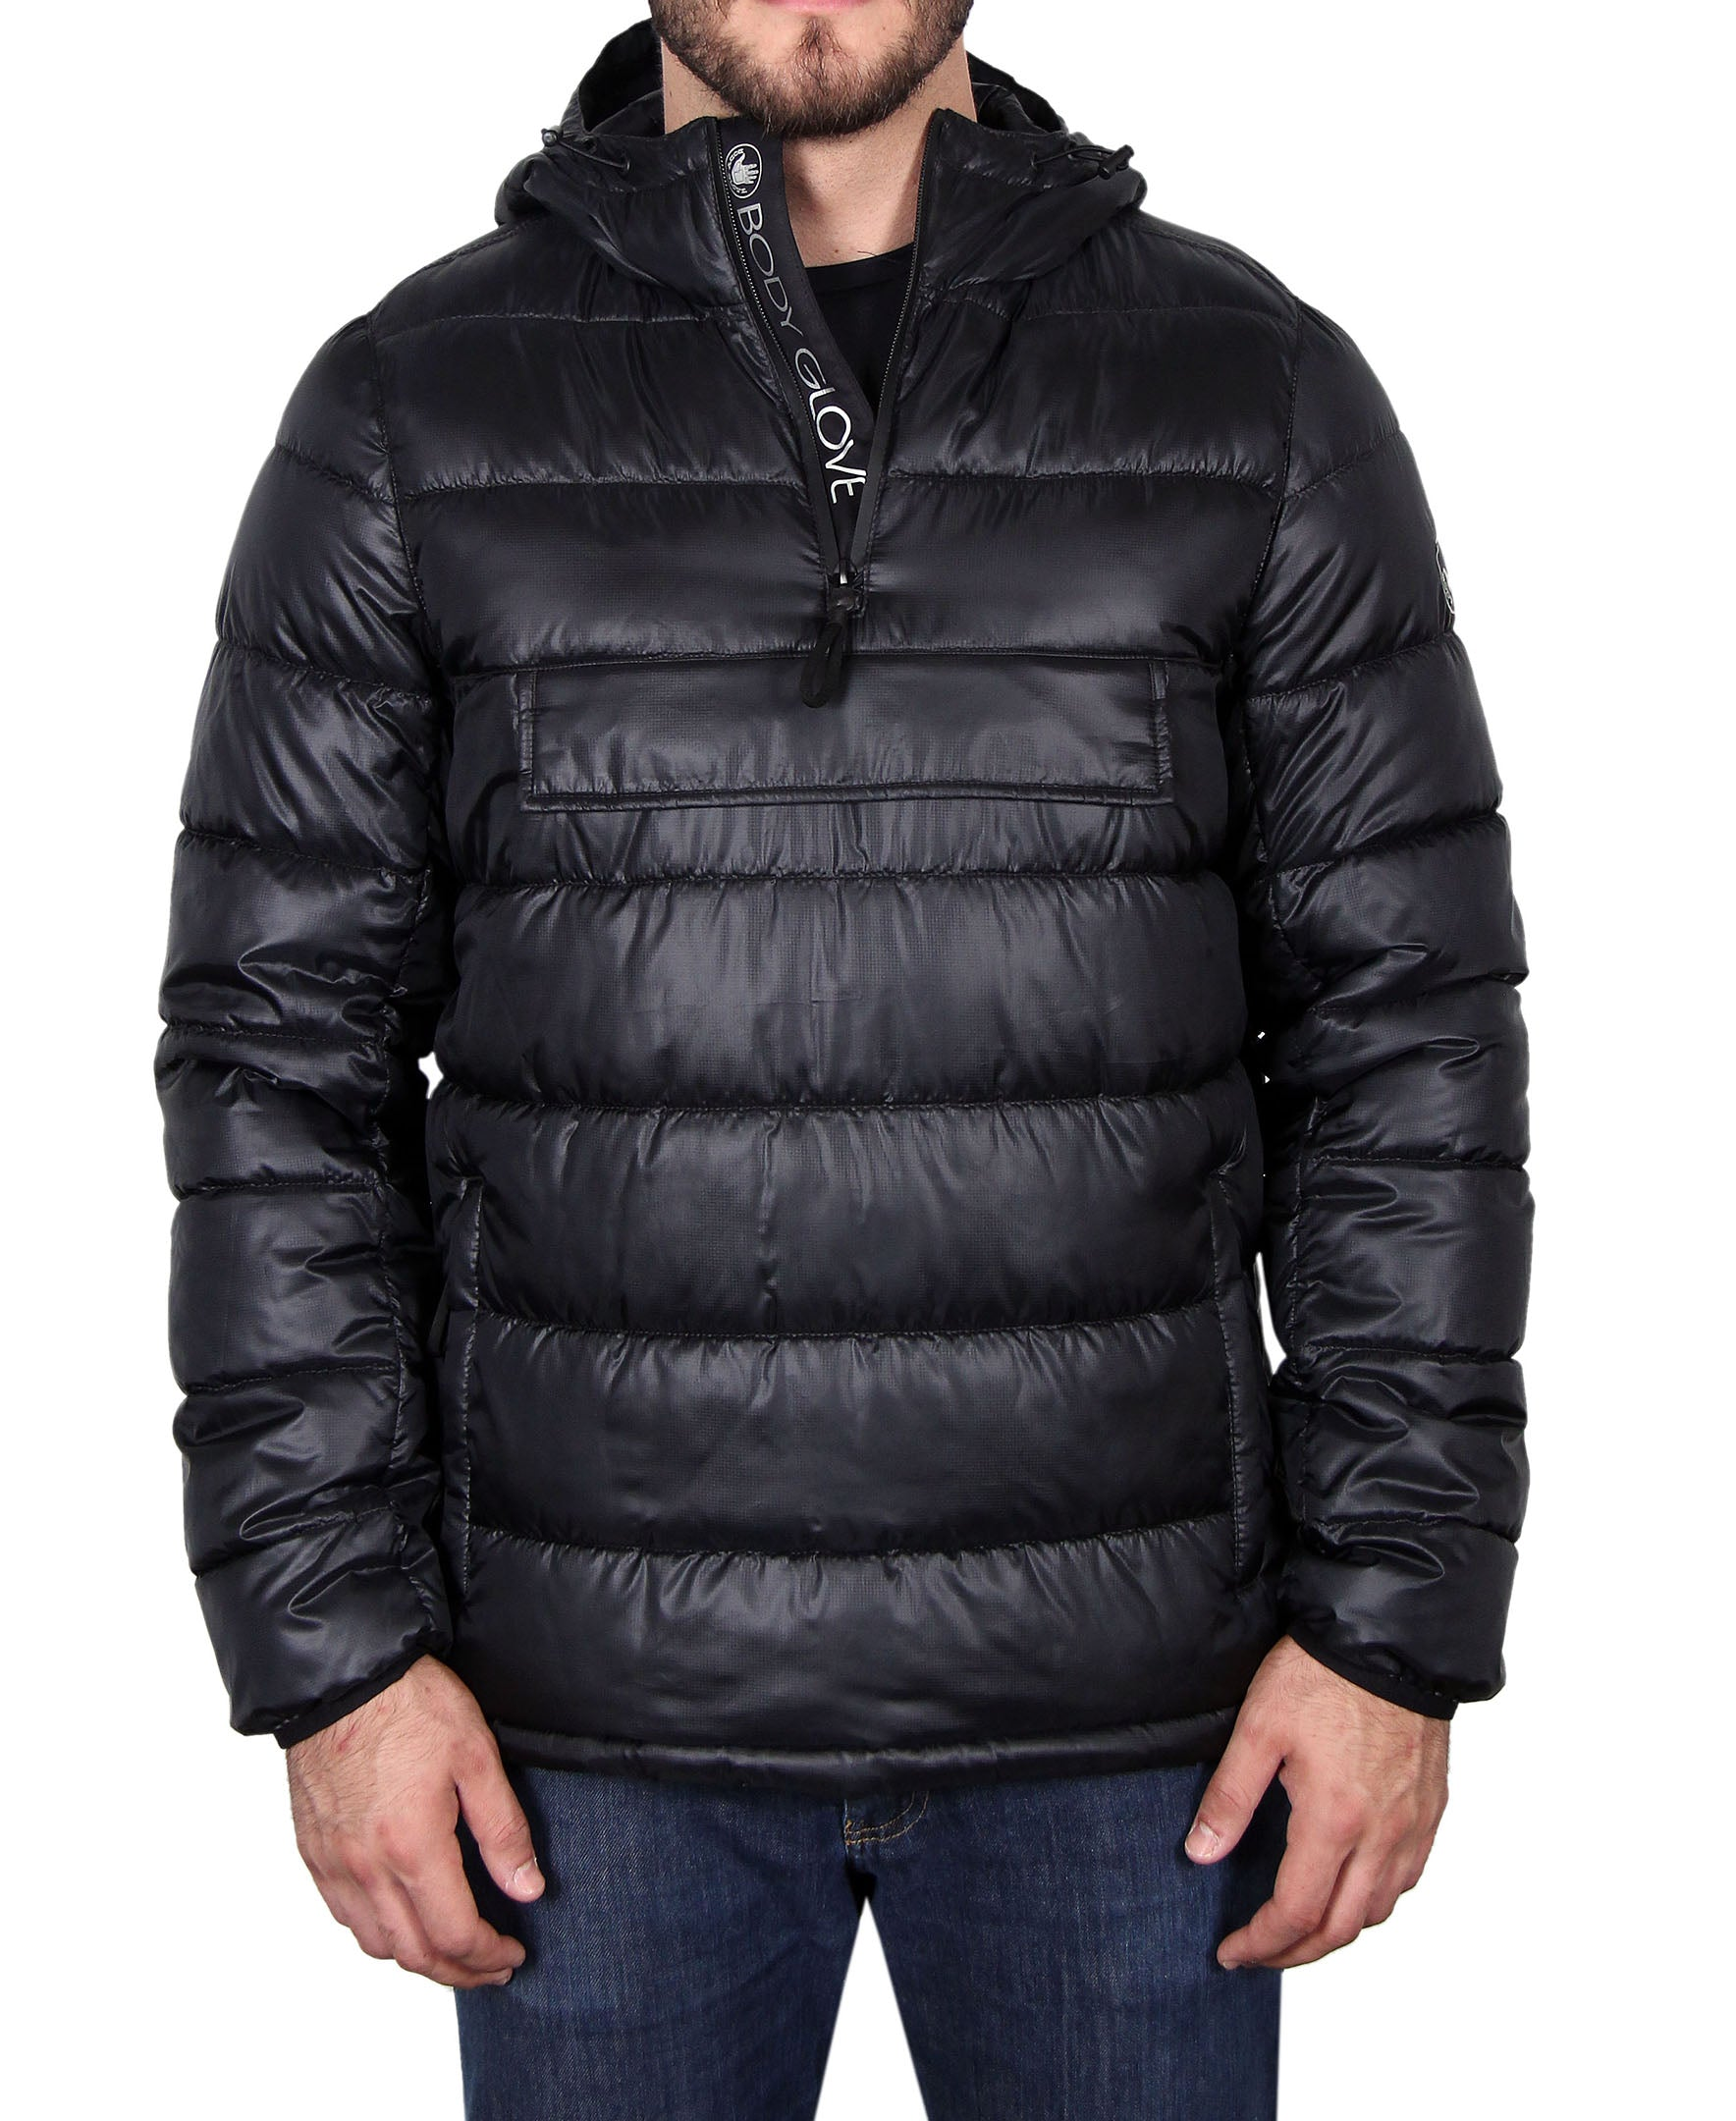 Men's Quilted Hooded Pullover - Black